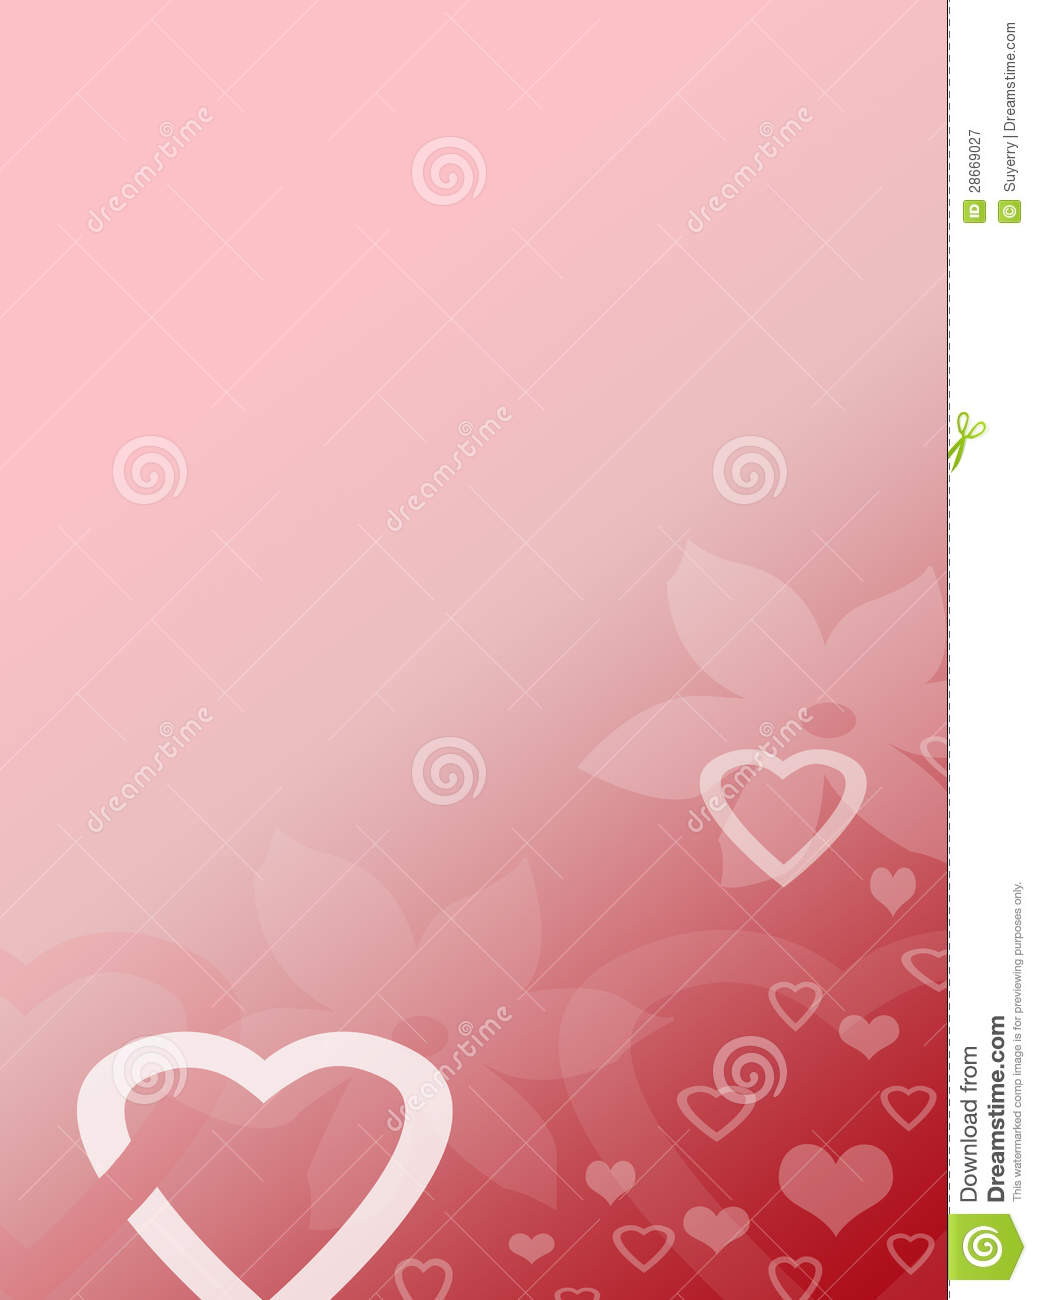 More similar stock images of ` Pink Heart Love Valentines Background ...